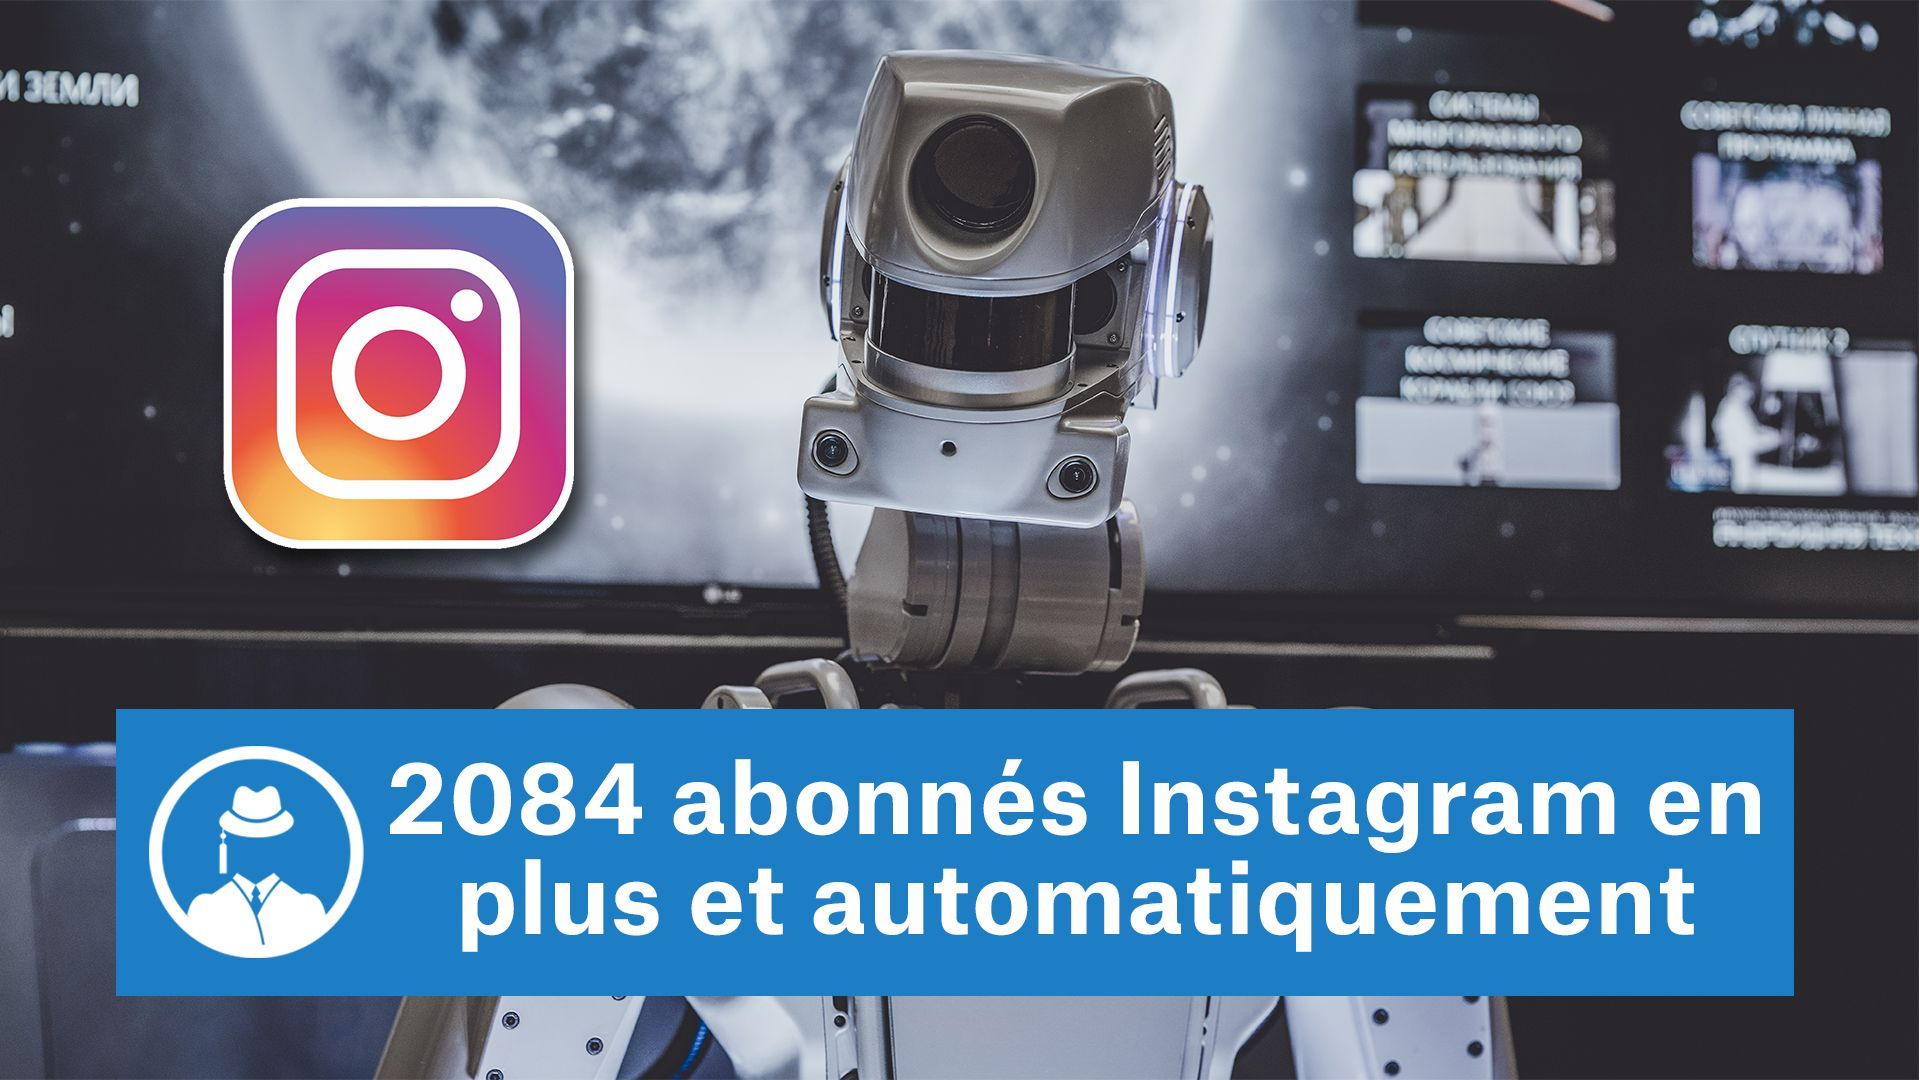 2084 abonnés Instagram en plus et automatiquement #GrowthHacking #WebMarketing #FormationGrowthHacking #CentreDeFormationFrance #TunnelAARRR #AARRR #SocialMedia #CommunityManagement #SEO #Instagram